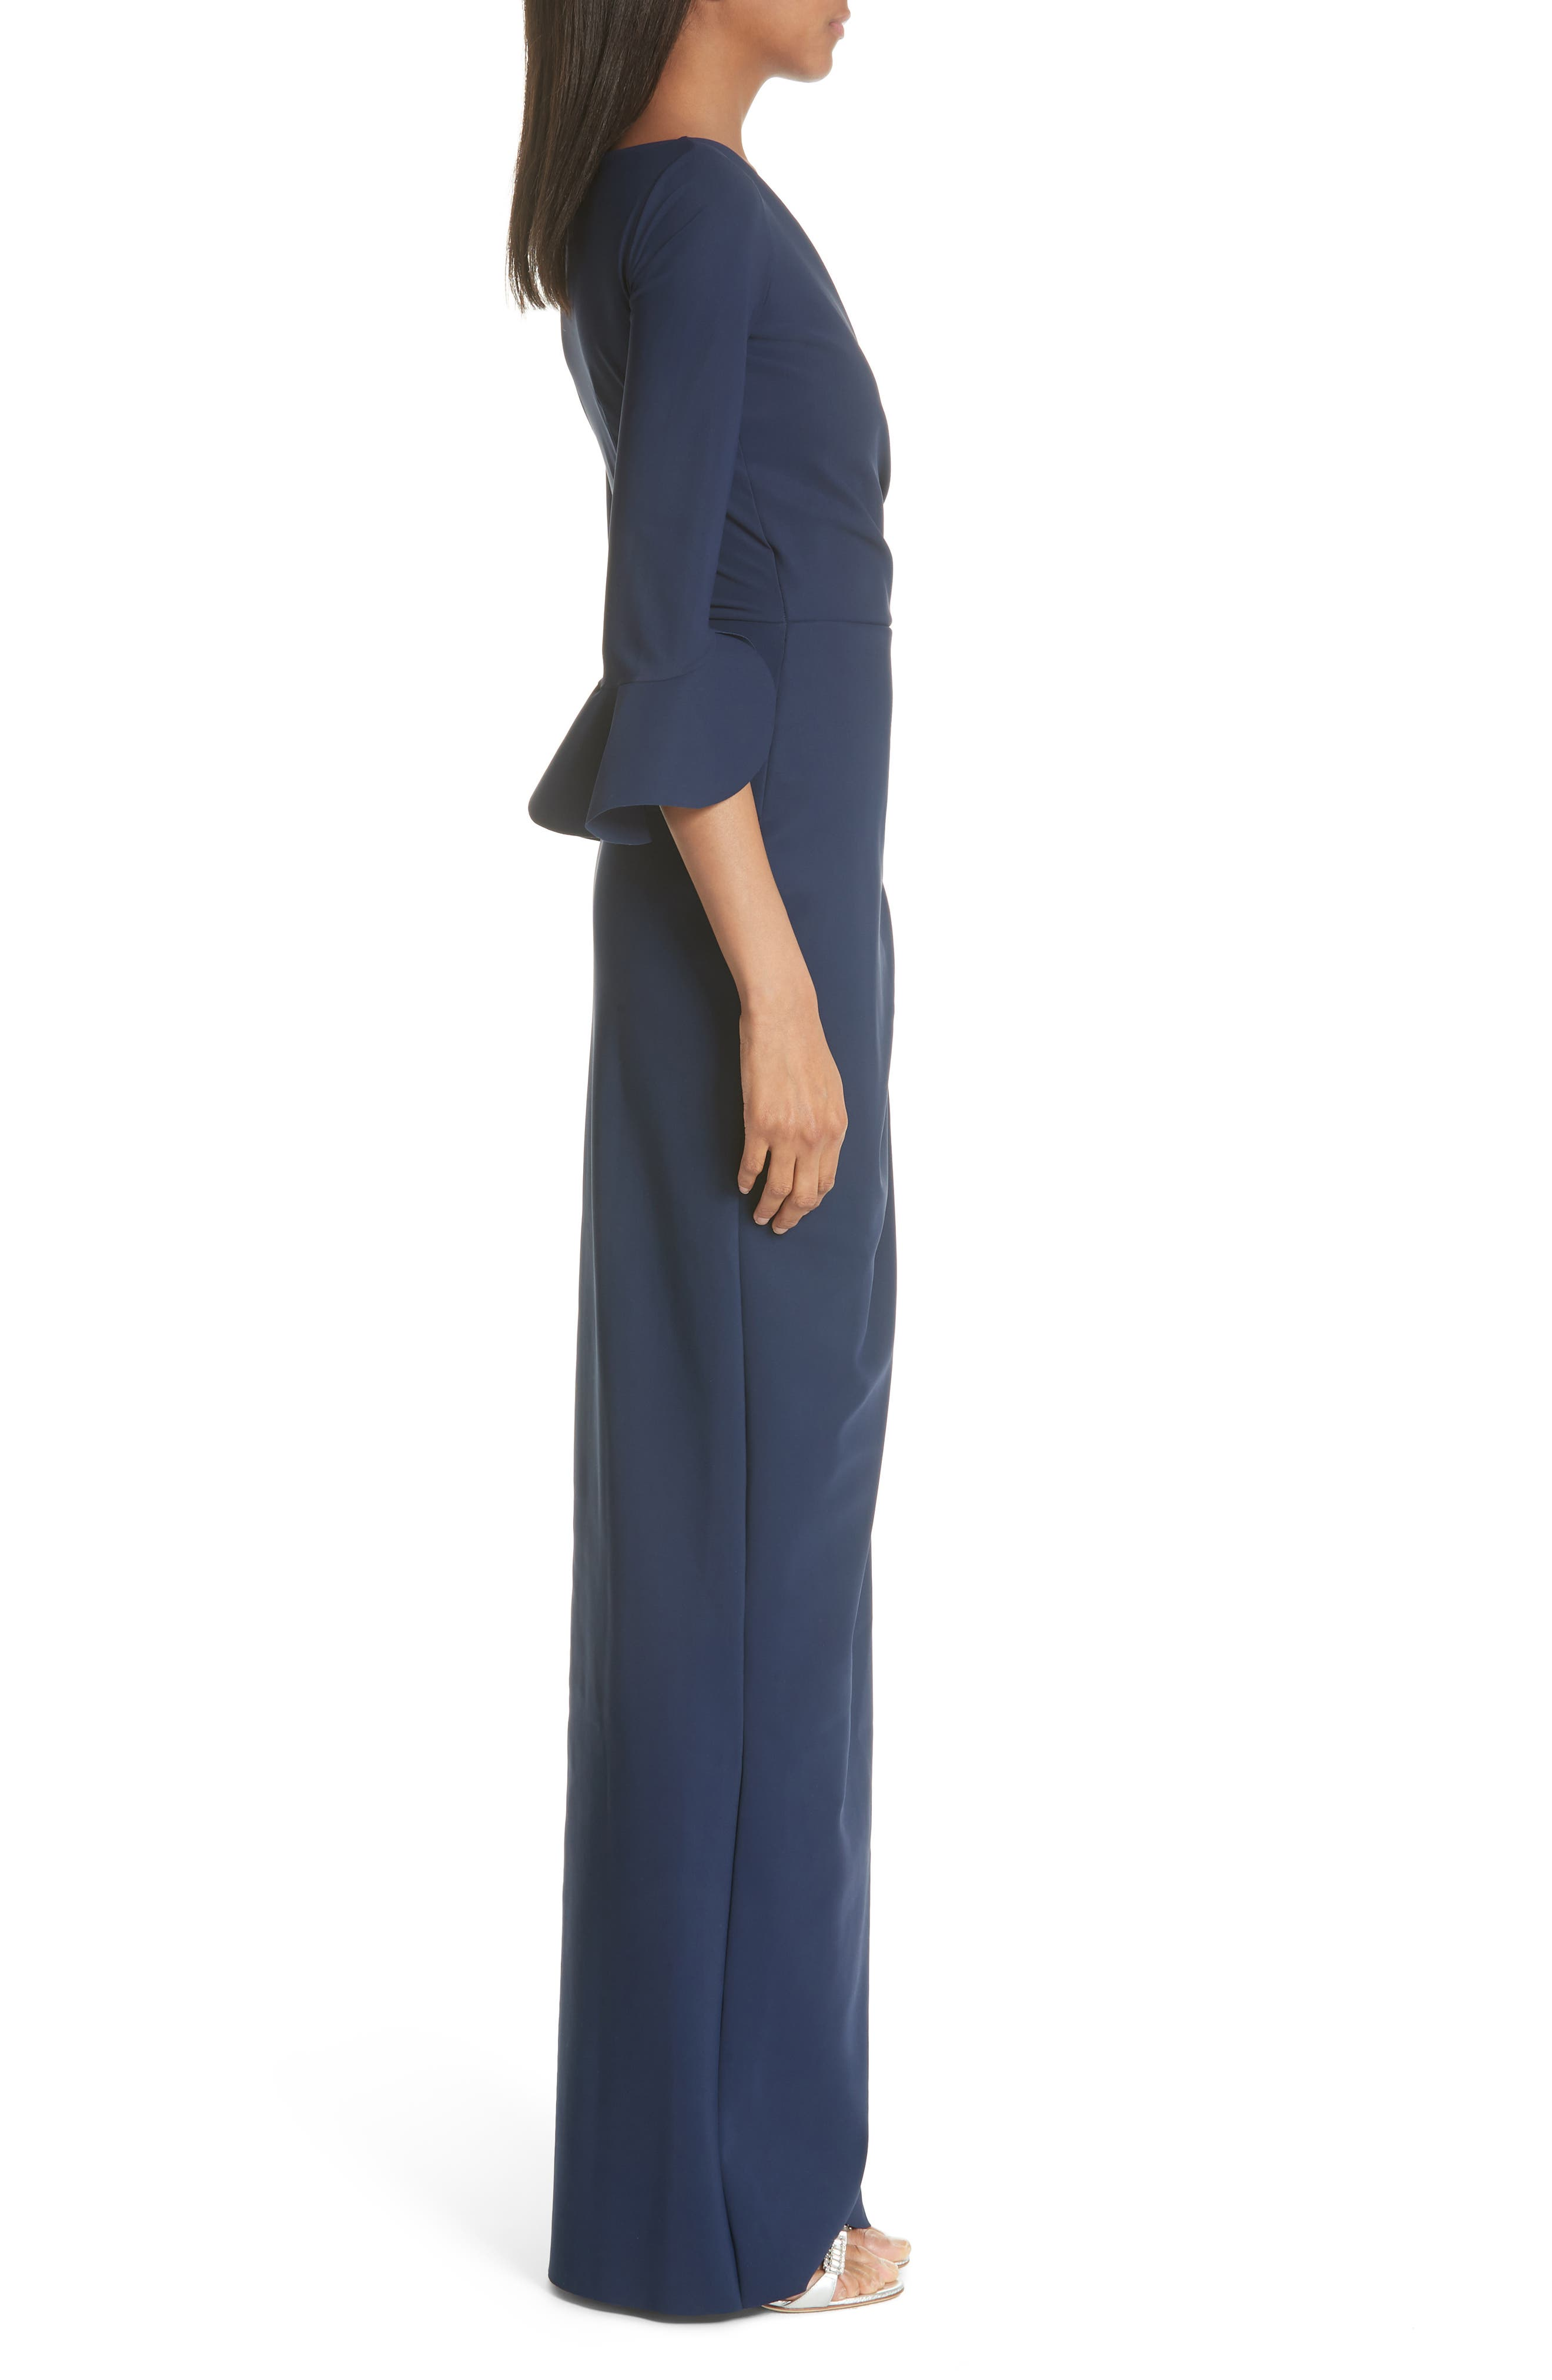 Ruched Bell Sleeve Evening Dress,                             Alternate thumbnail 3, color,                             BLUE NOTTE